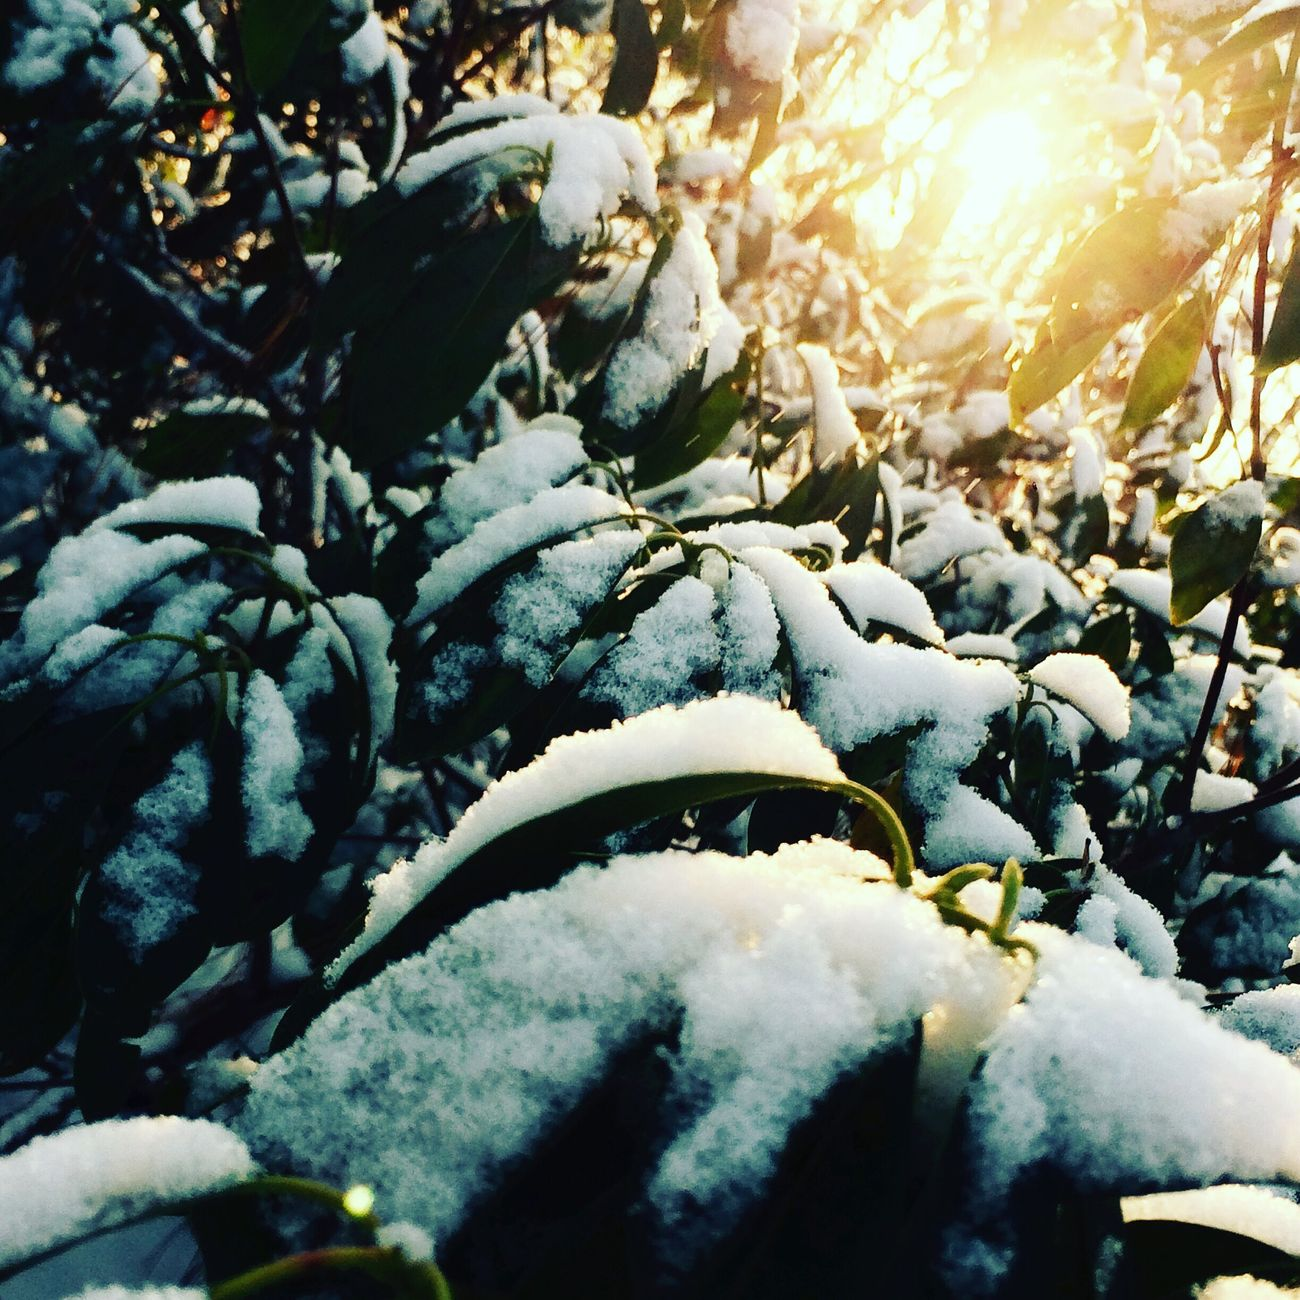 Nature Sunlight Close-up Winter Cold Temperature Outdoors Beauty In Nature Day Sunbeam Leaves No People Water